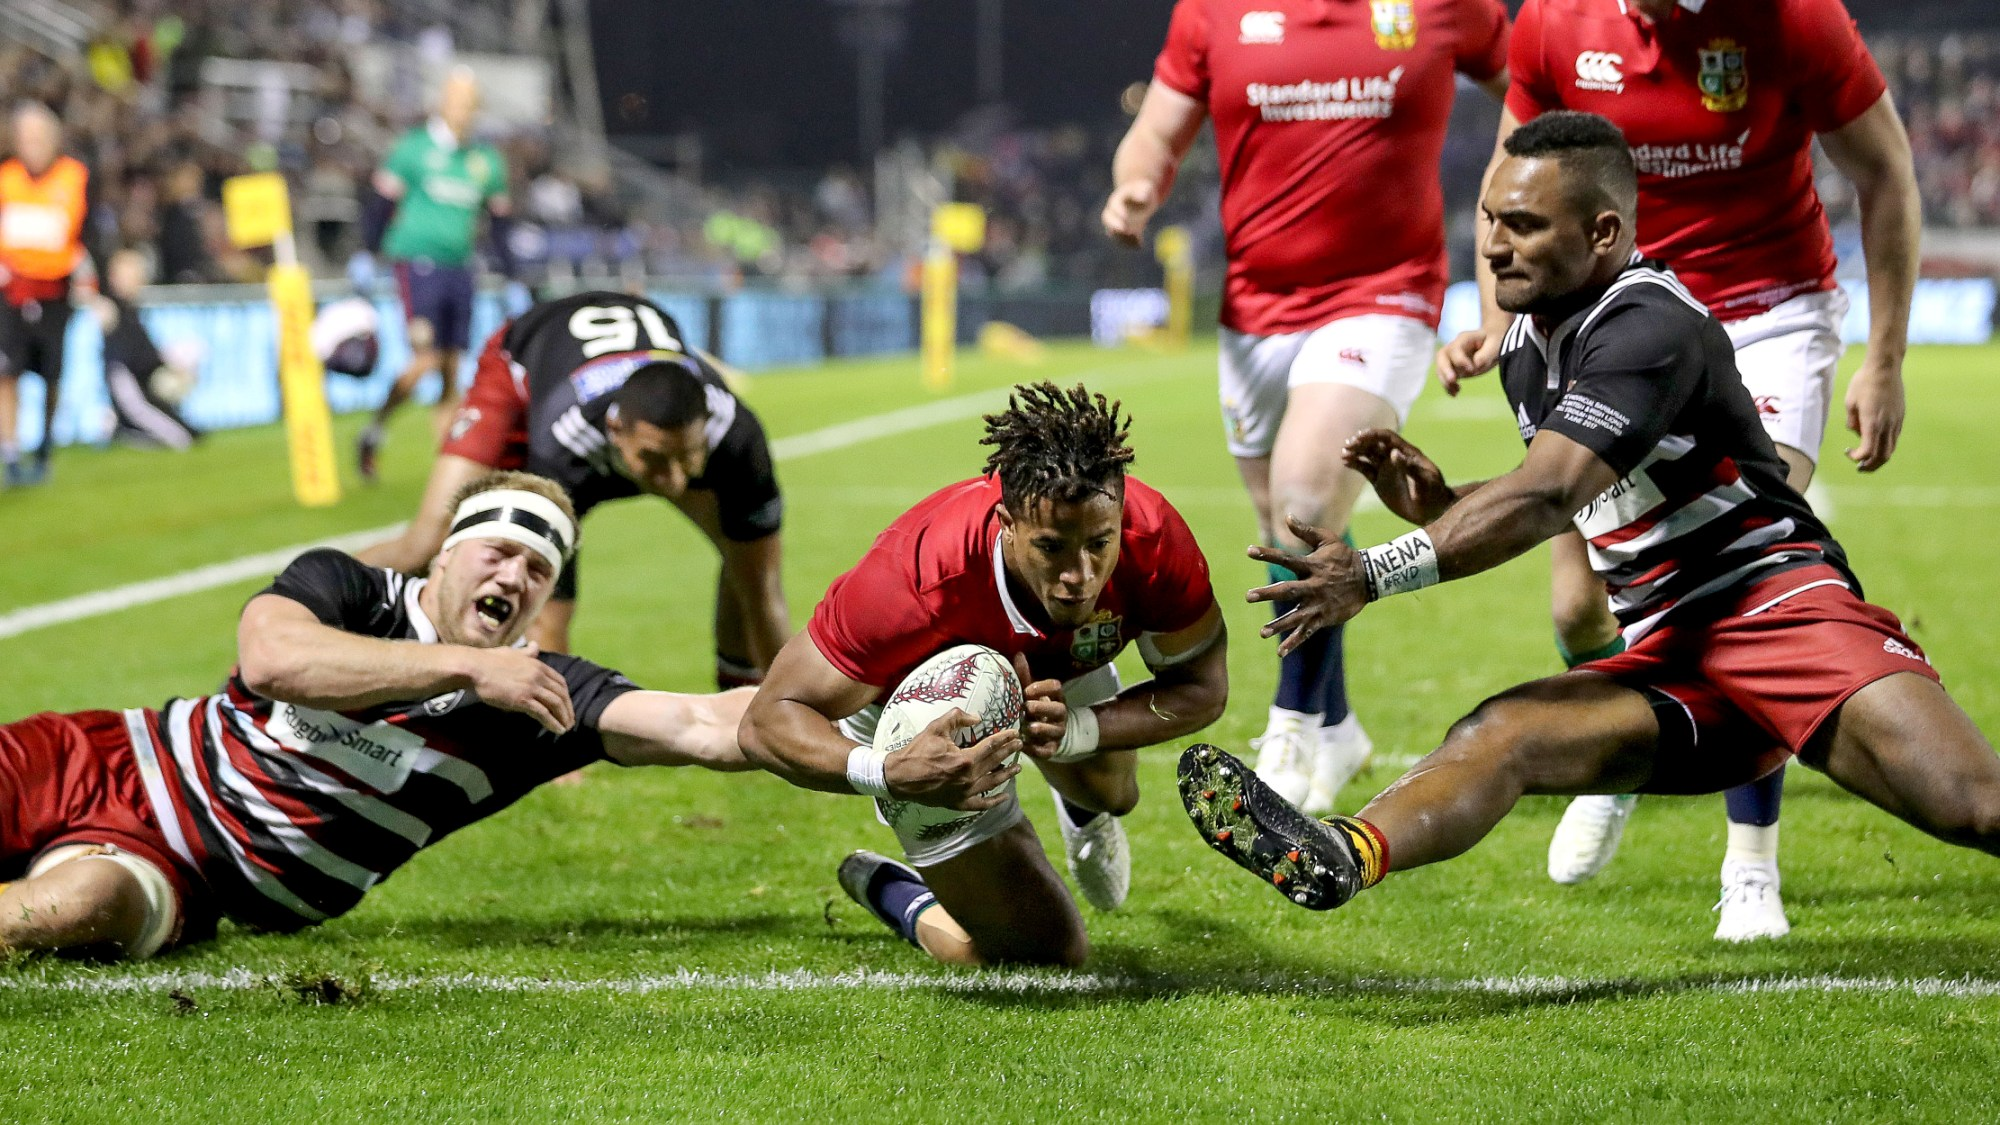 Lions overcome NZ Provincial Barbarians in Tour opener